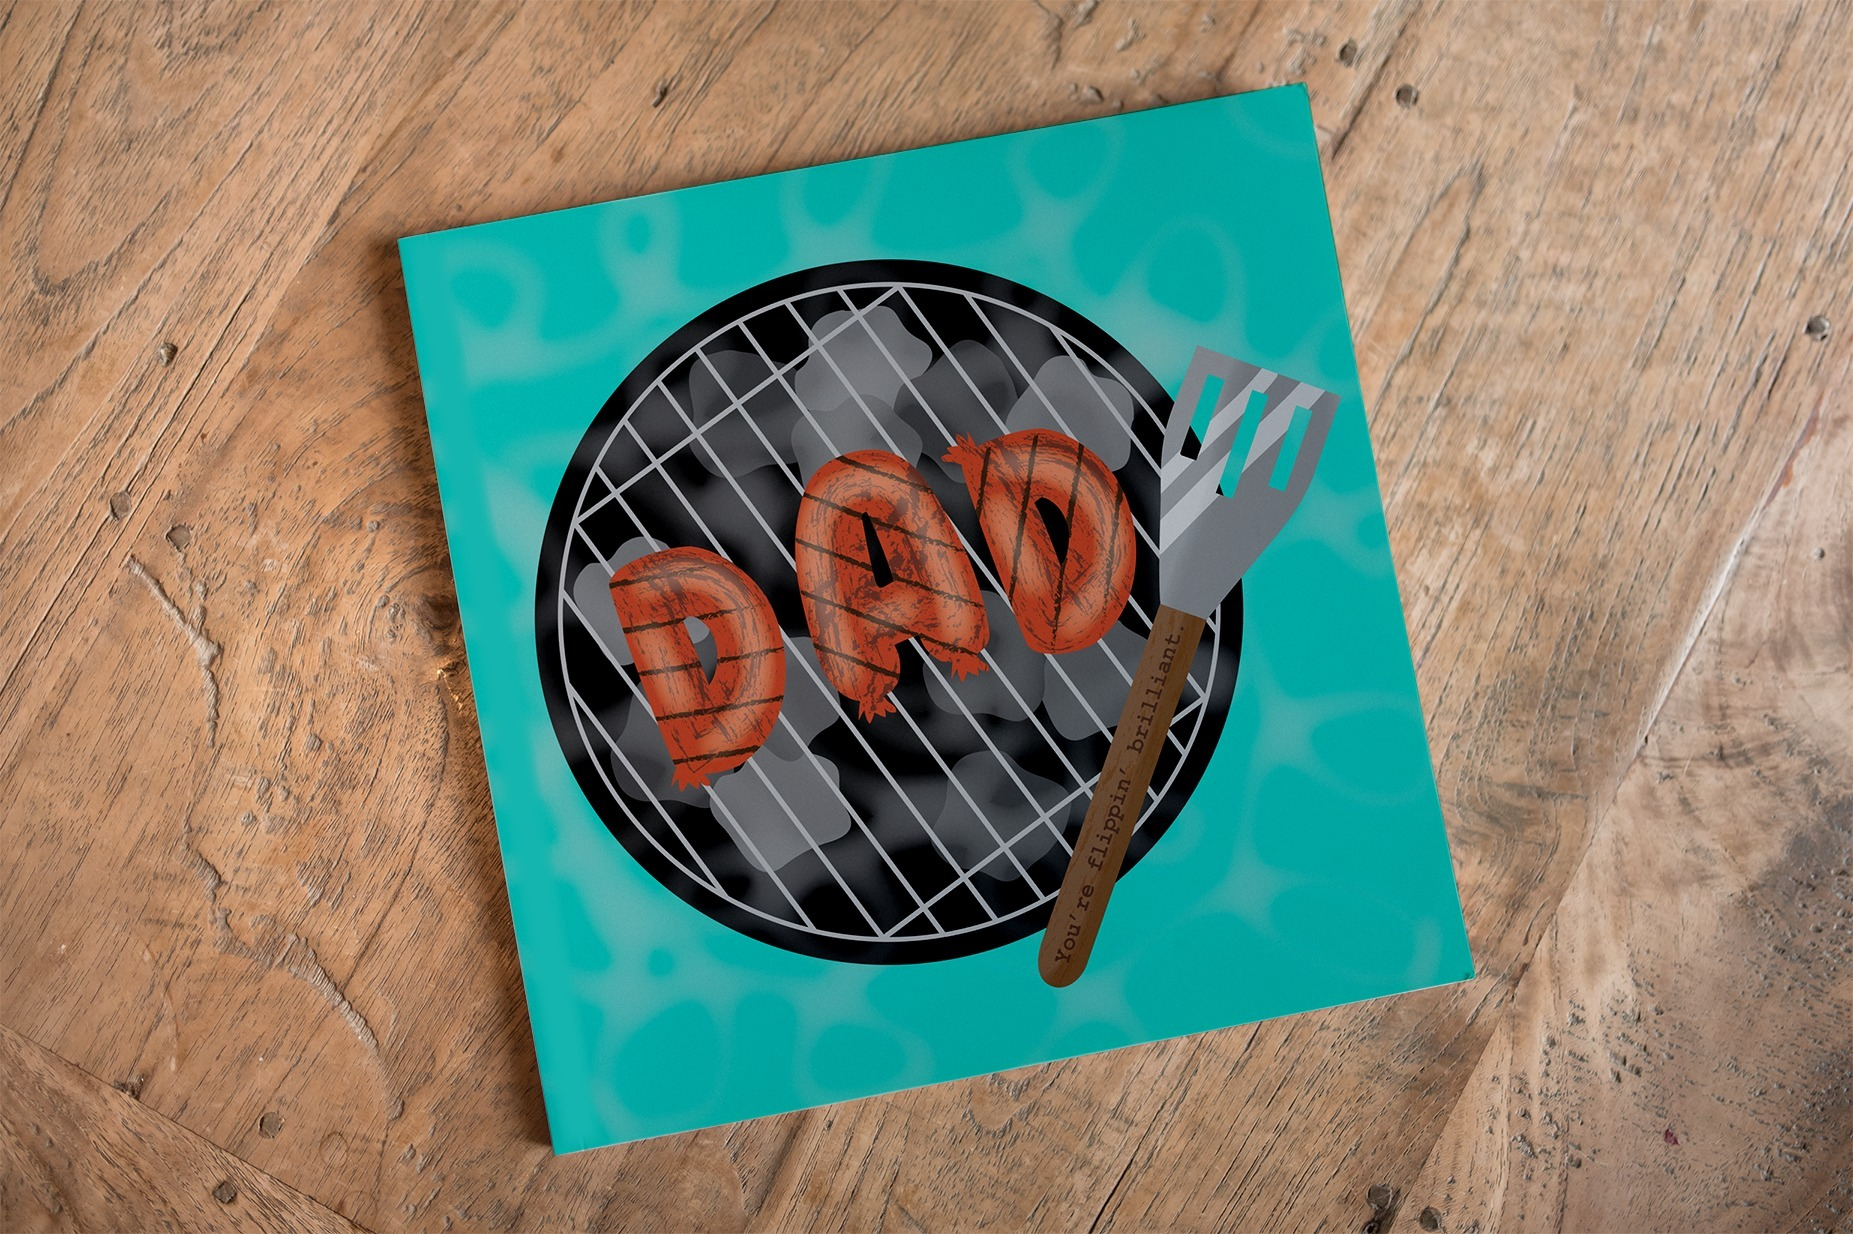 #ProudlyPrinted Father's Day - charli tait